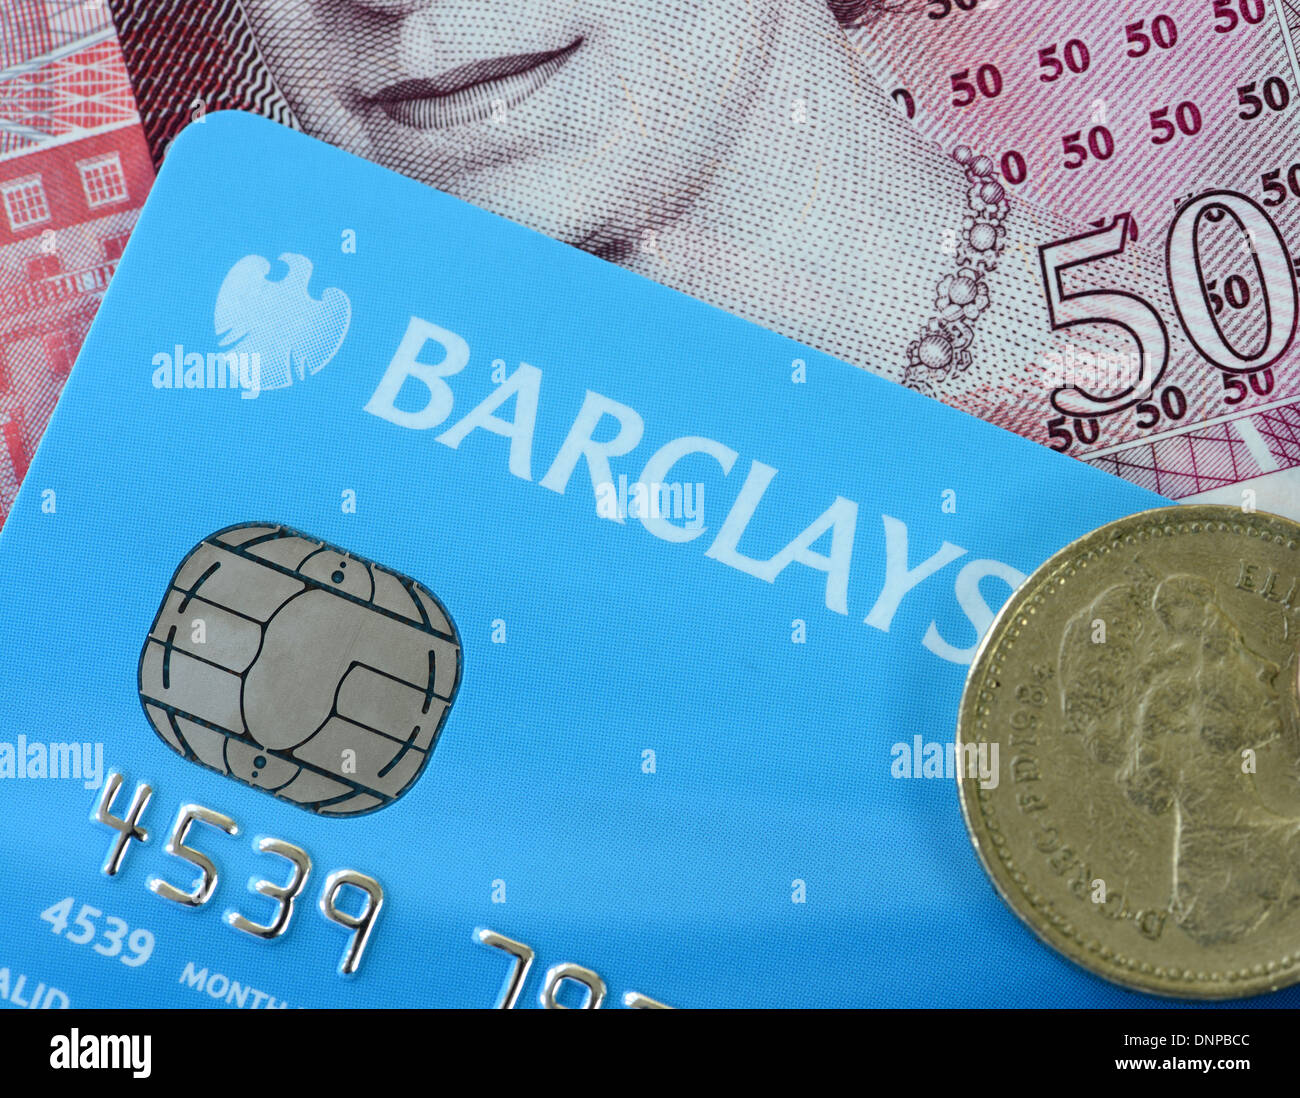 Barclays Visa card and Sterling currency - Stock Image